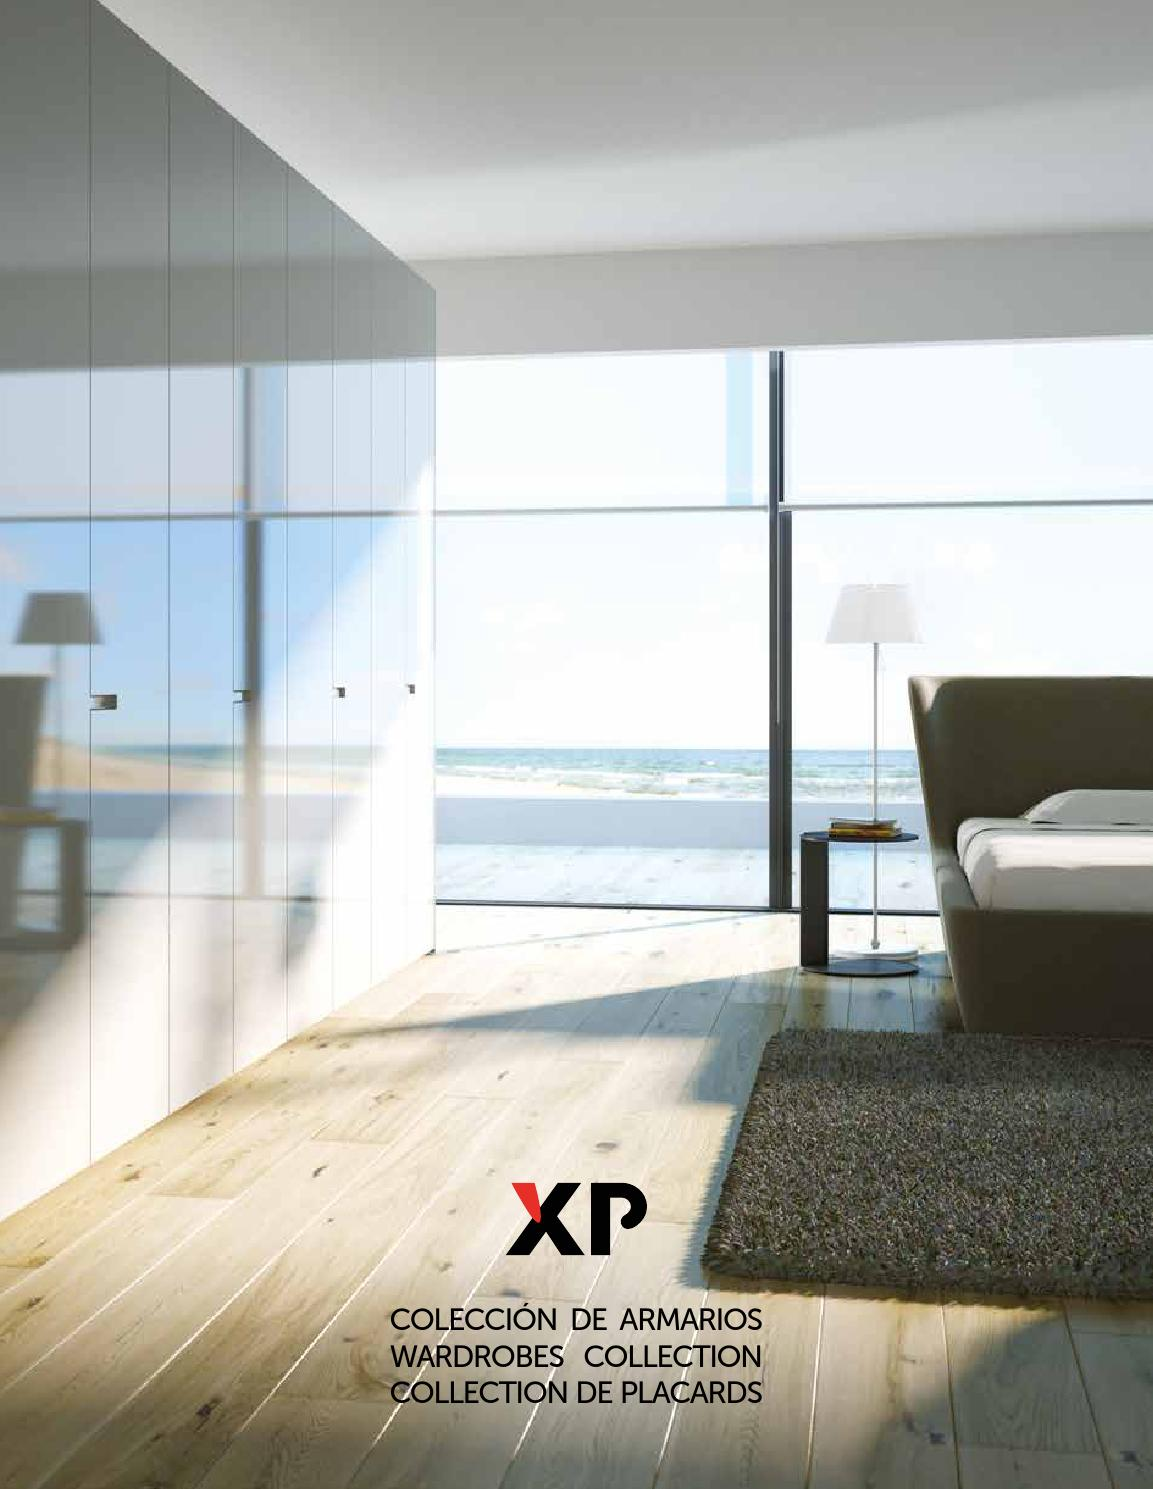 Muebles Xp Instalaciones - Xp Cat Logo 2015 Colecci N De Armarios Wardrobes Collection By [mjhdah]https://www.alimarket.es/media/images/2018/detalle_art/265279/178006_high_original.jpg